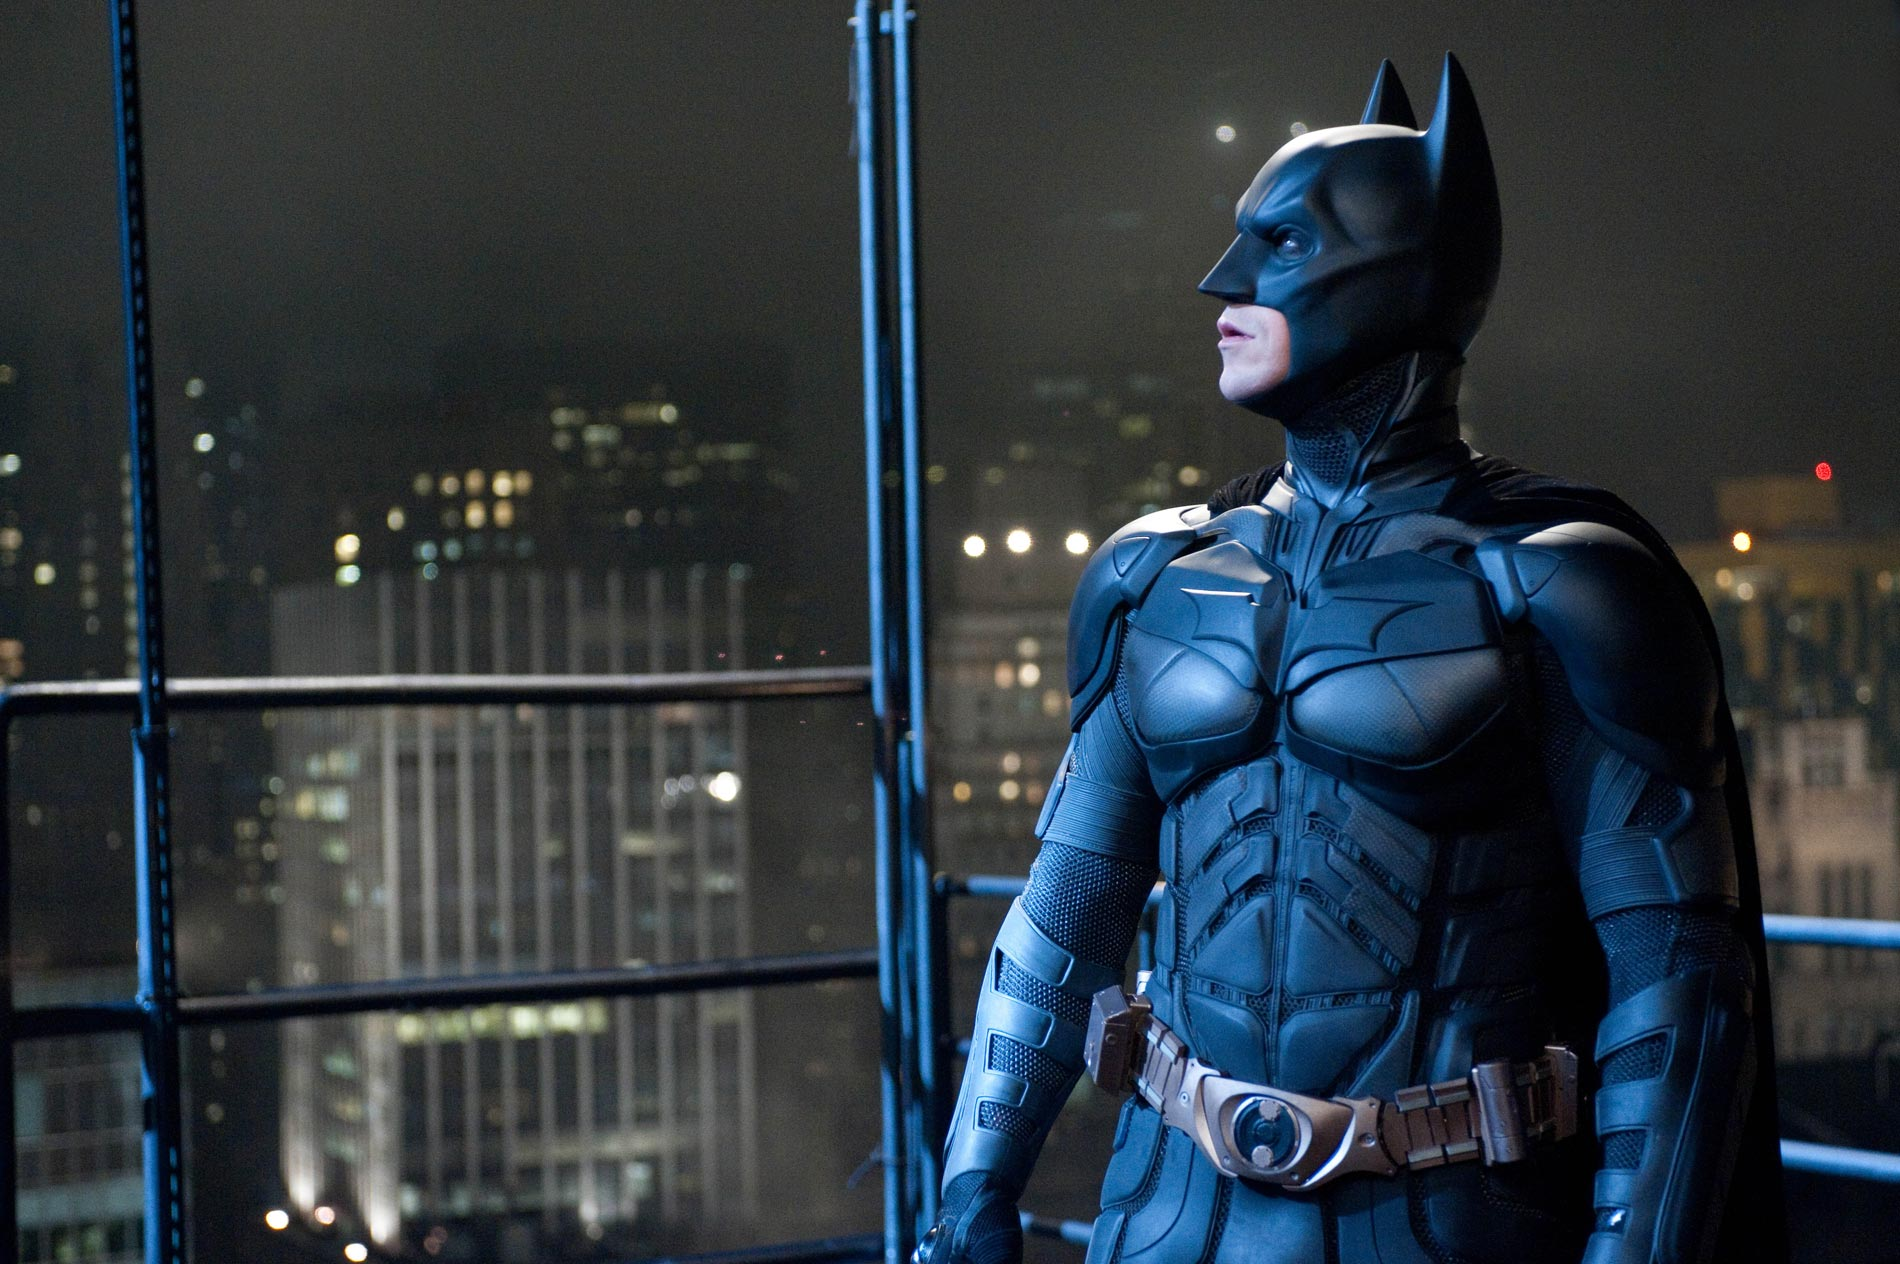 Watch Movie The Dark Knight This Weekend On Amazon_2